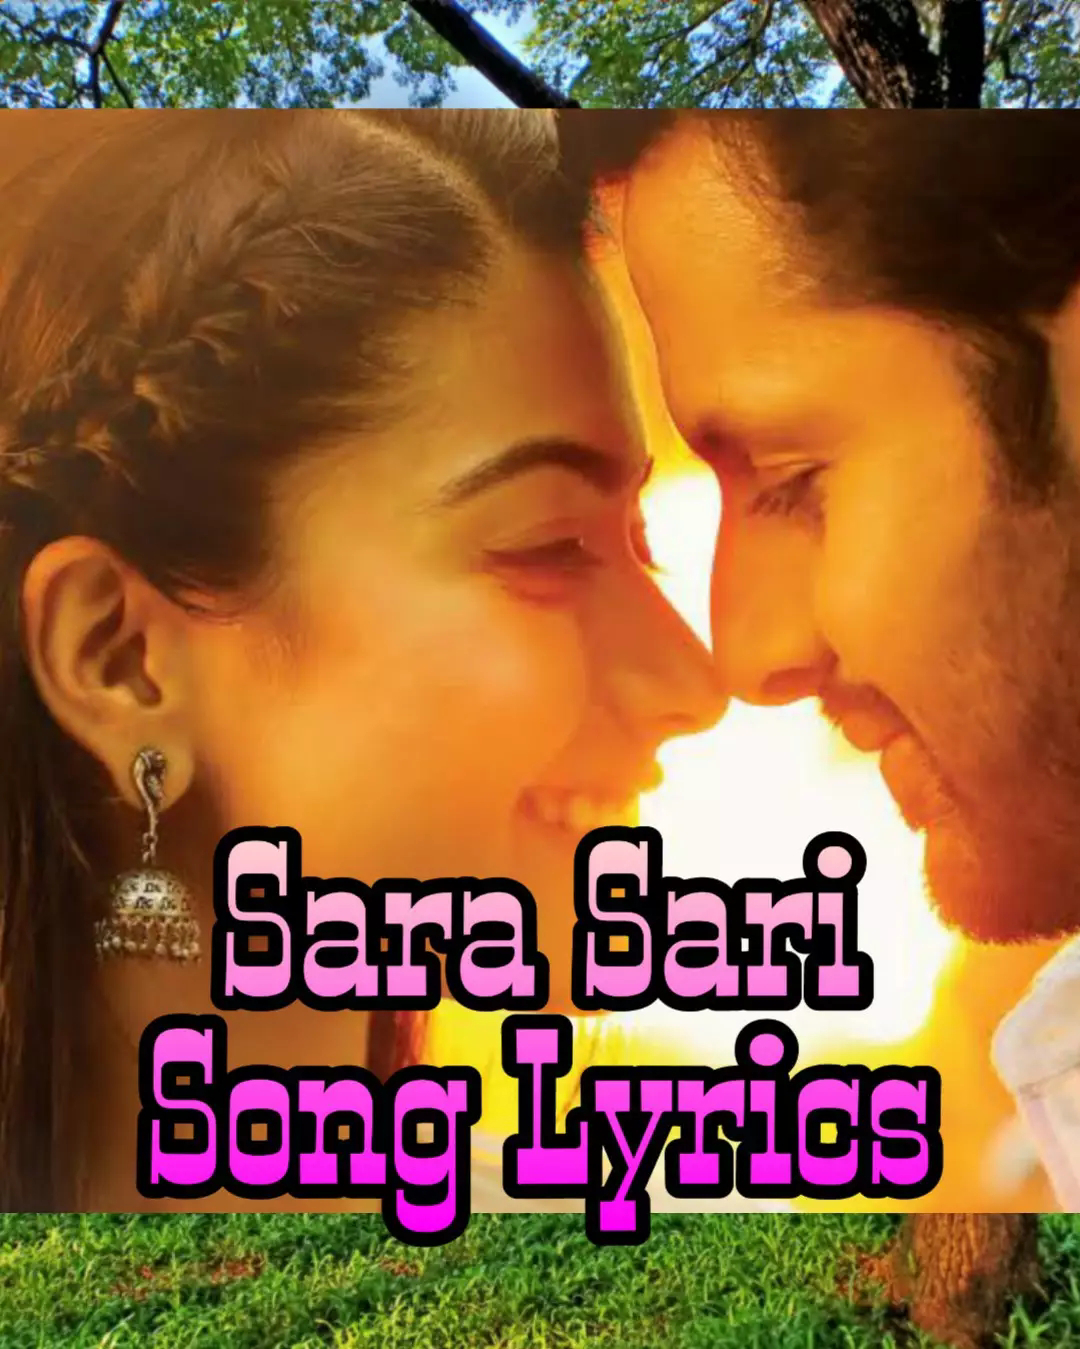 Sara Sari Song Lyrics Bheeshma